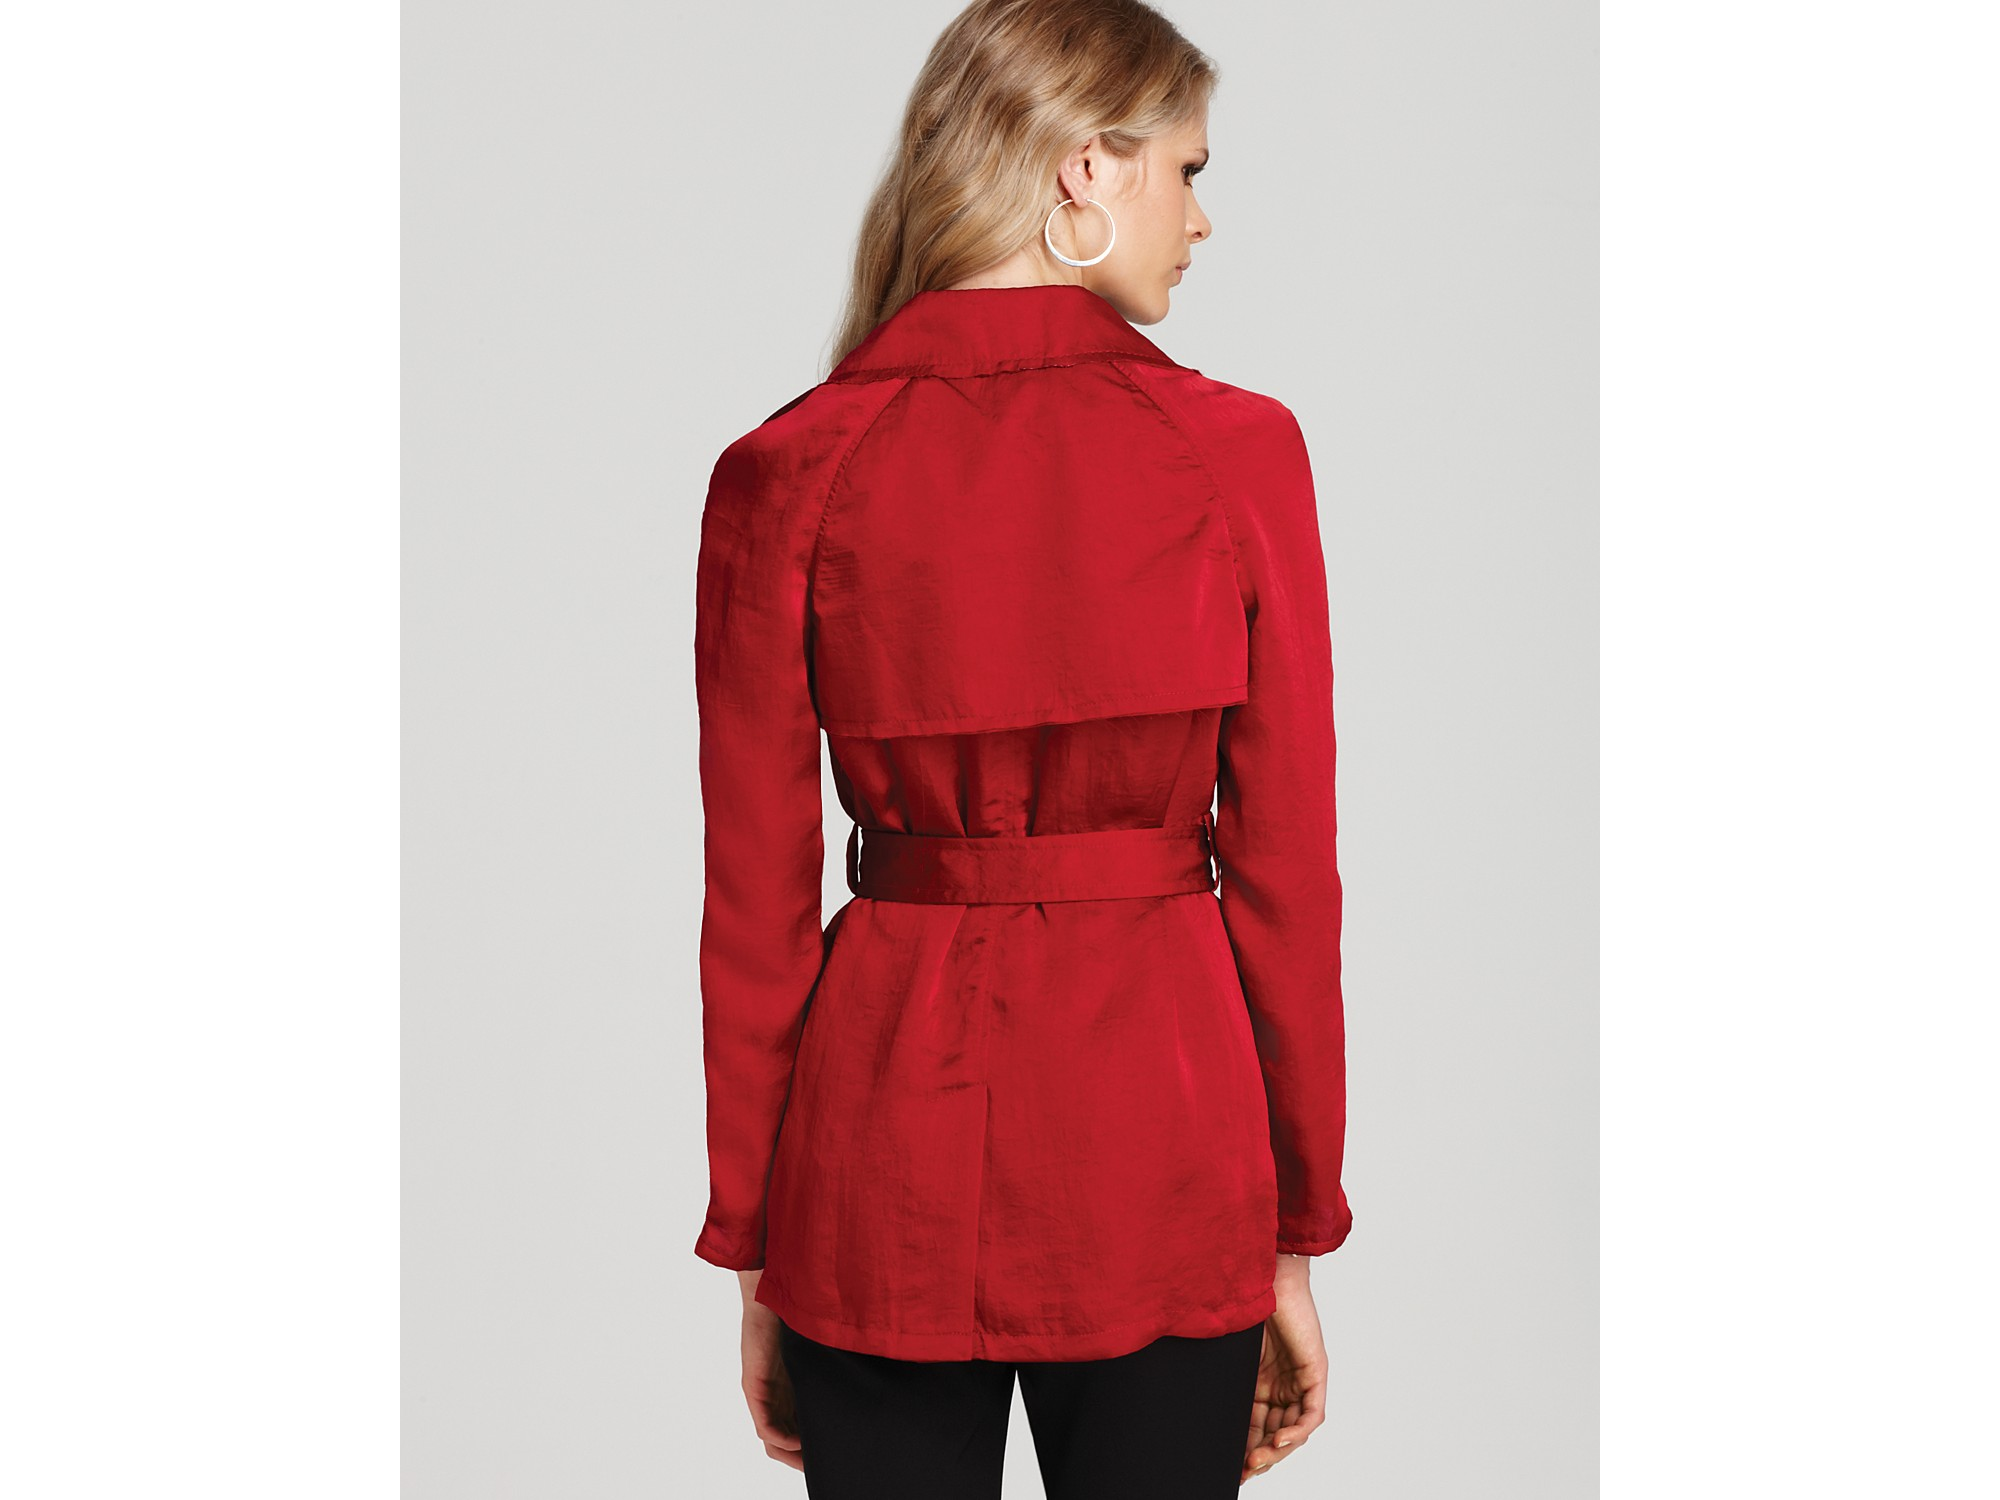 Michael kors Michael Short Trench Coat & More in Red   Lyst